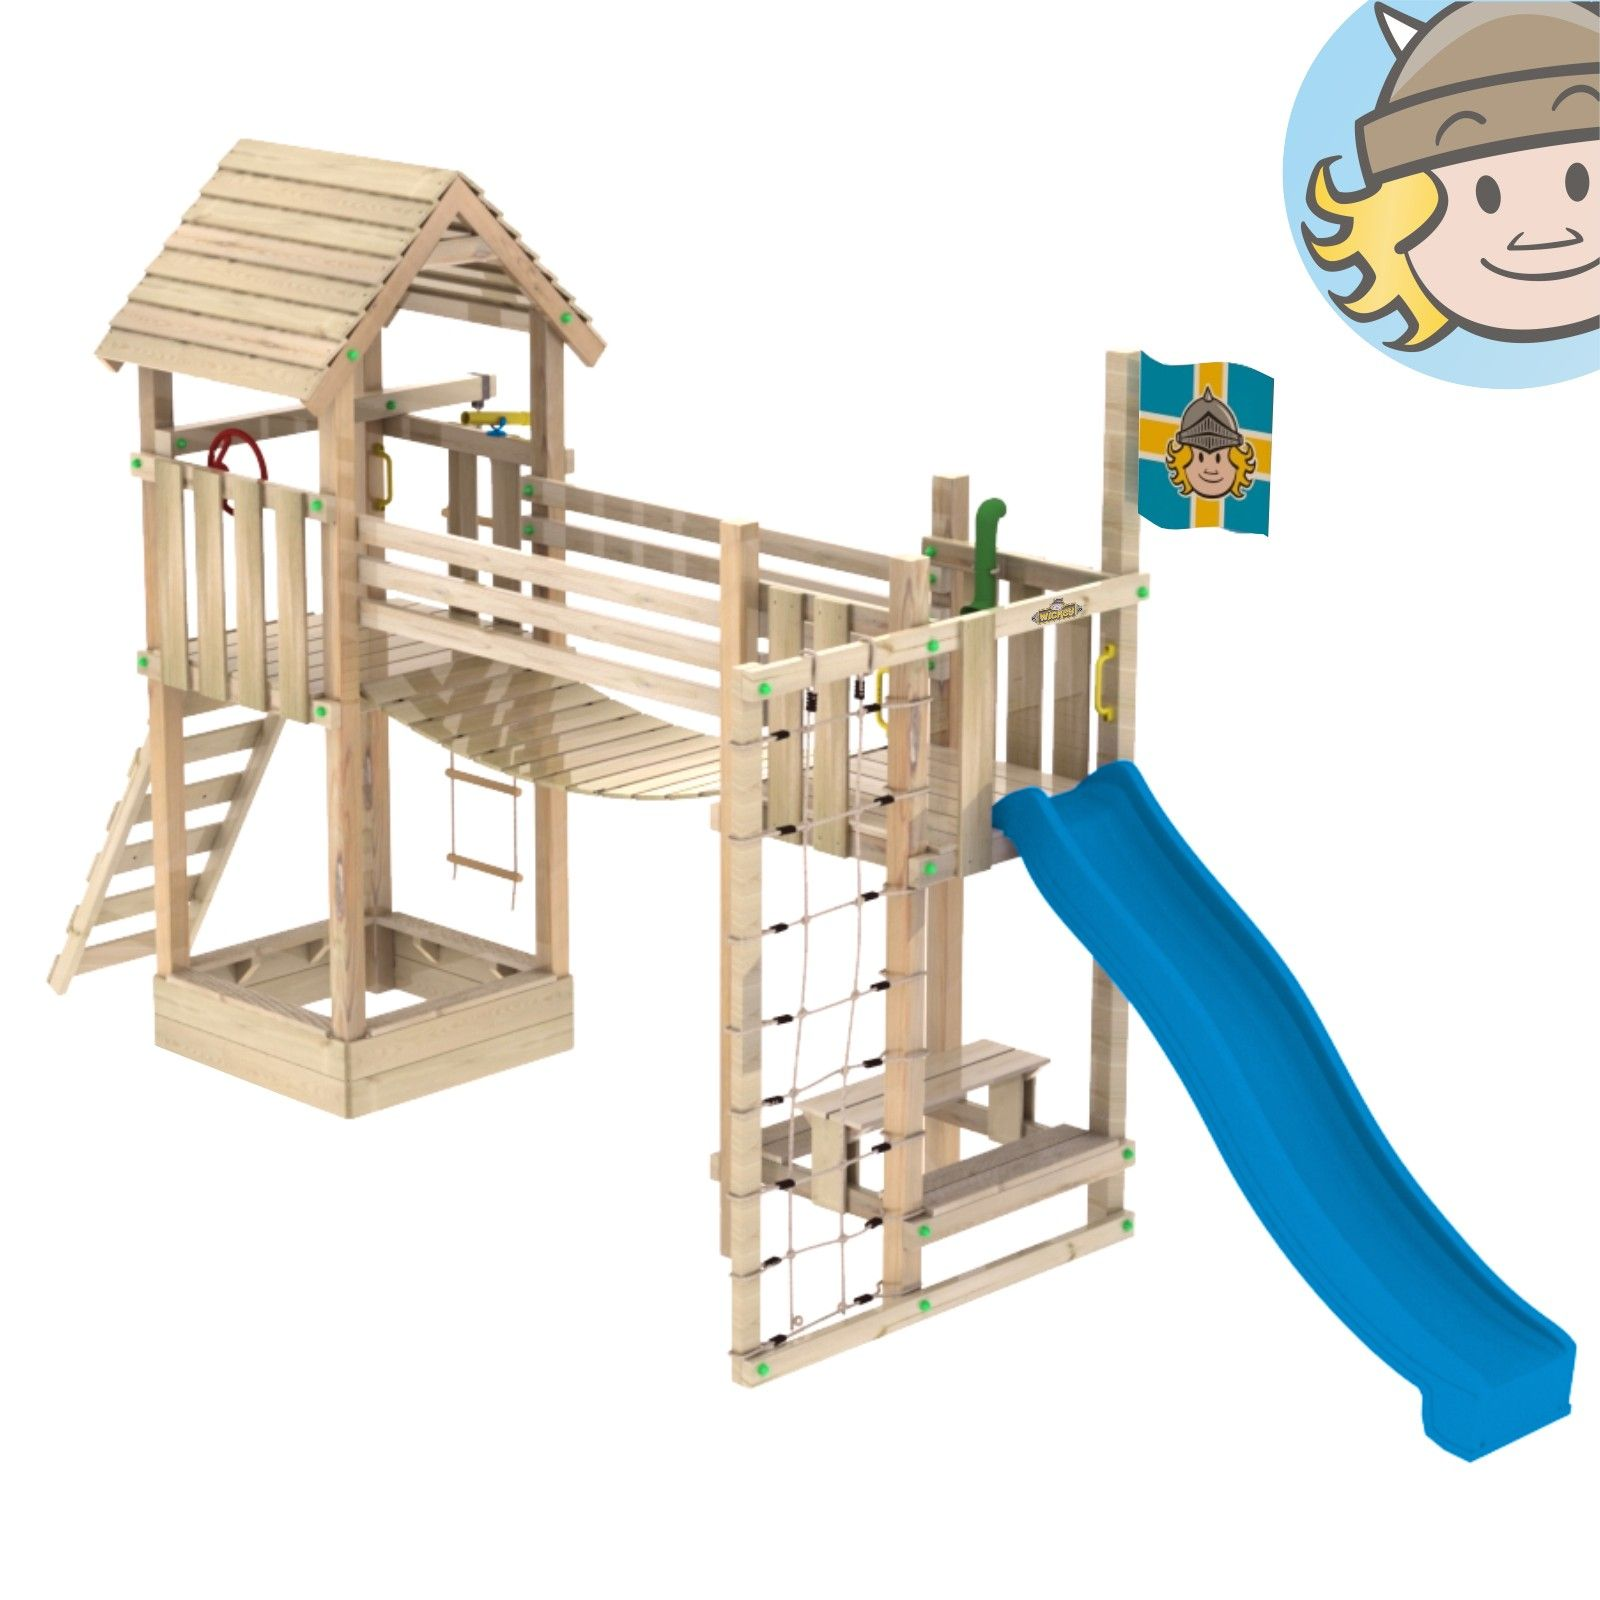 Aire De Jeux En Bois Exterieur Пин на доске a kids backyard playground swing set fort playhouse